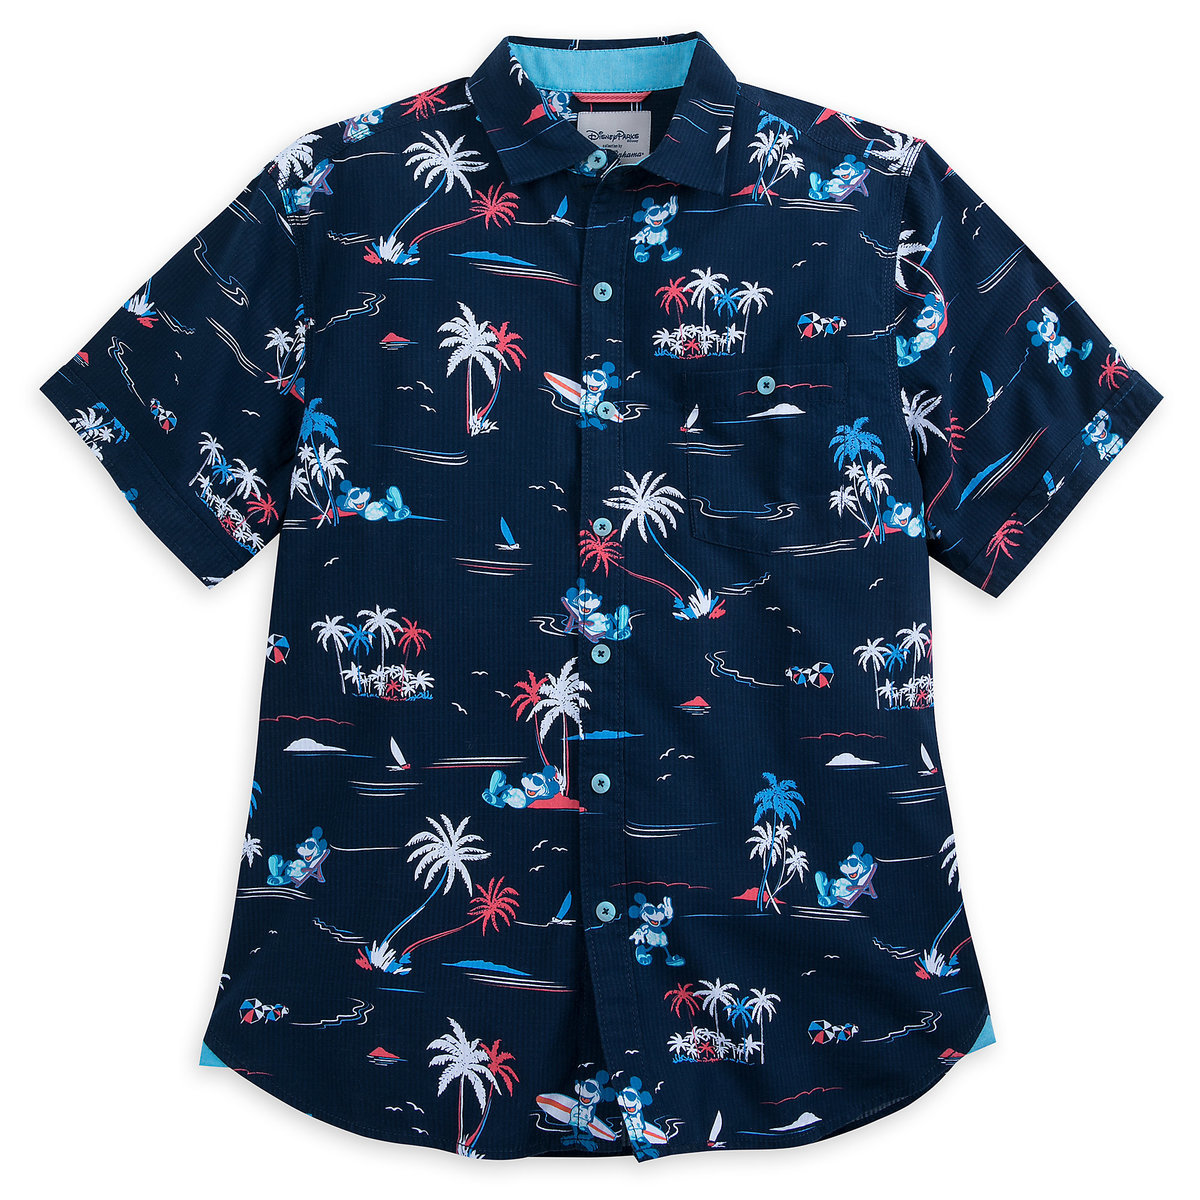 7250e5f7 Product Image of Mickey Mouse Button Shirt for Men by Tommy Bahama - Navy #  1